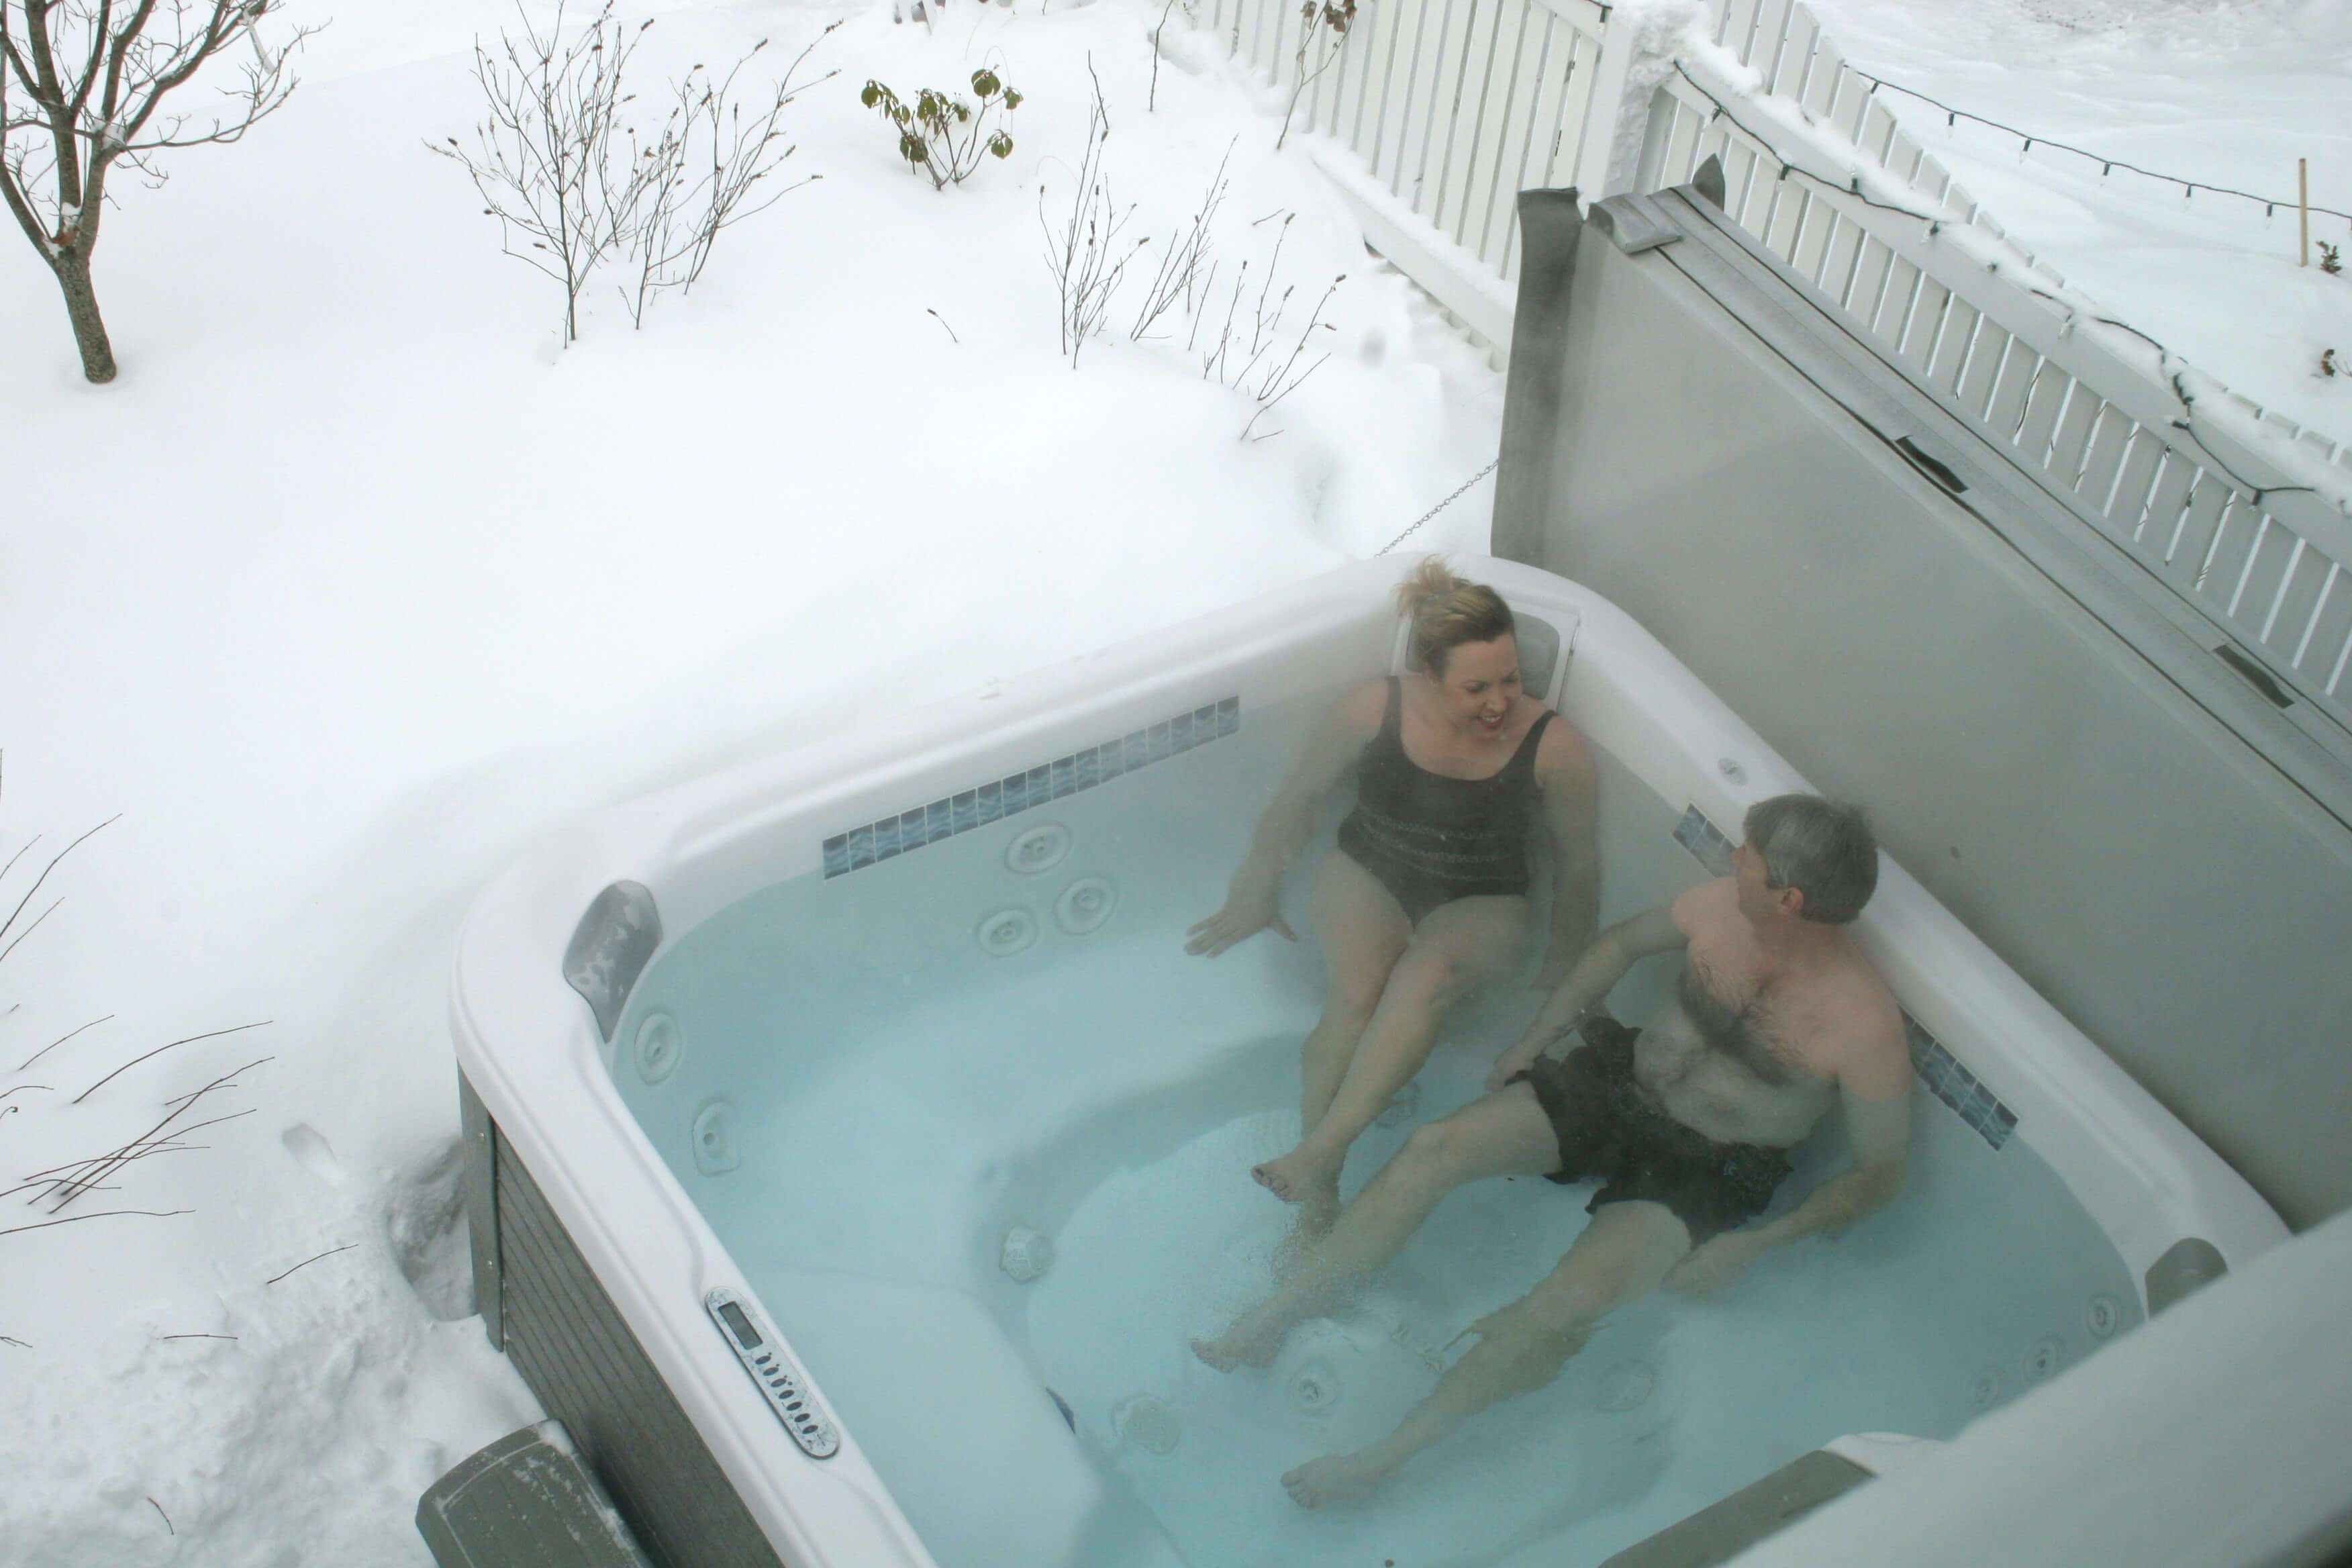 Couple sits in outdoor hot tub on a snowy day